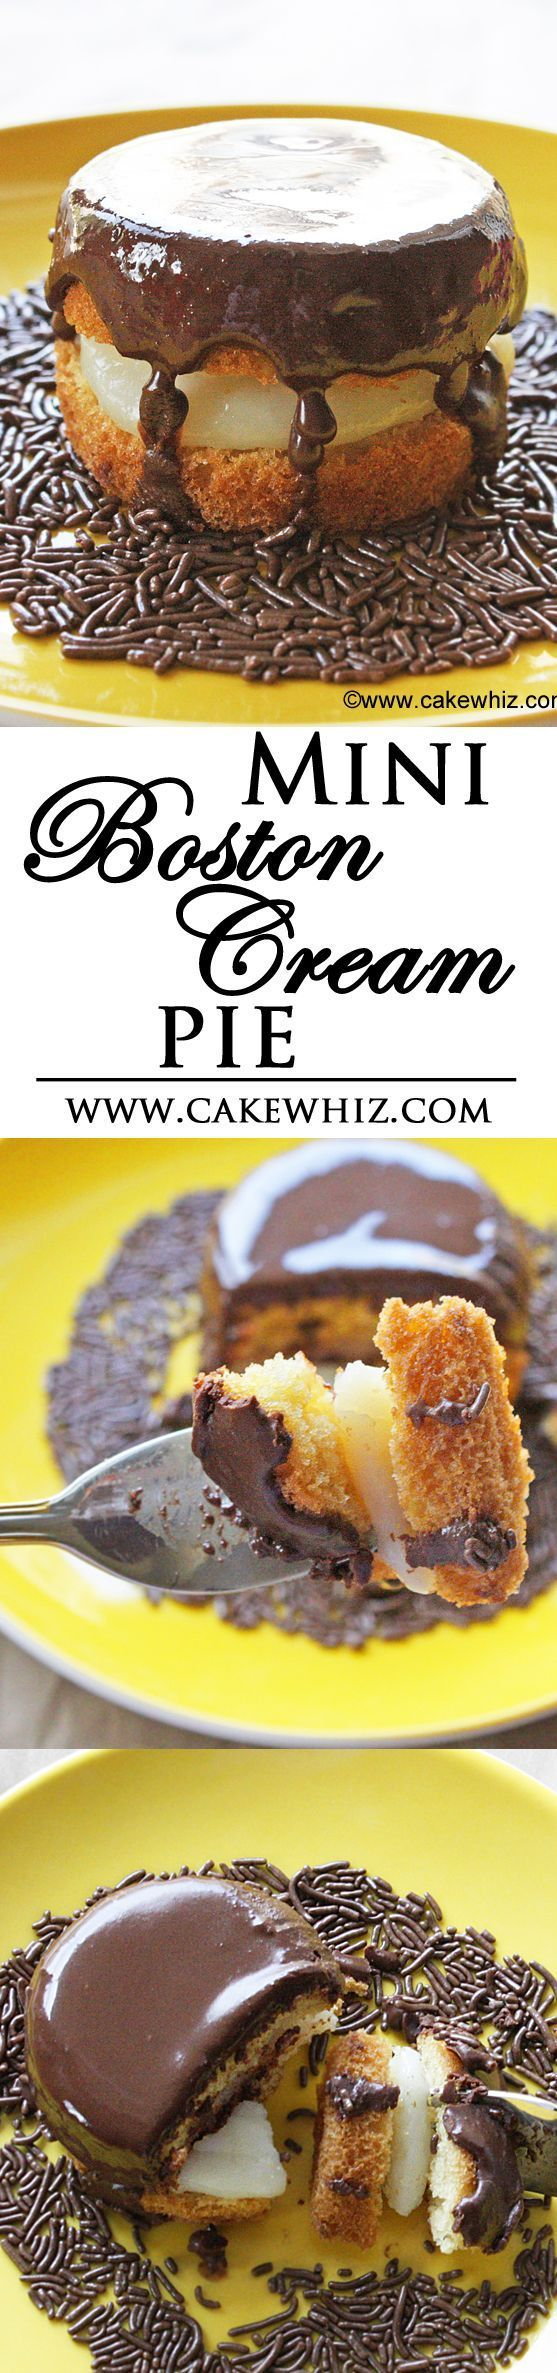 These MINI BOSTON CREAM PIES are so cute! They are made with bite sized vanilla cupcakes, filled with creamy vanilla pudding and topped off with glossy chocolate ganache! From cakewhiz.com